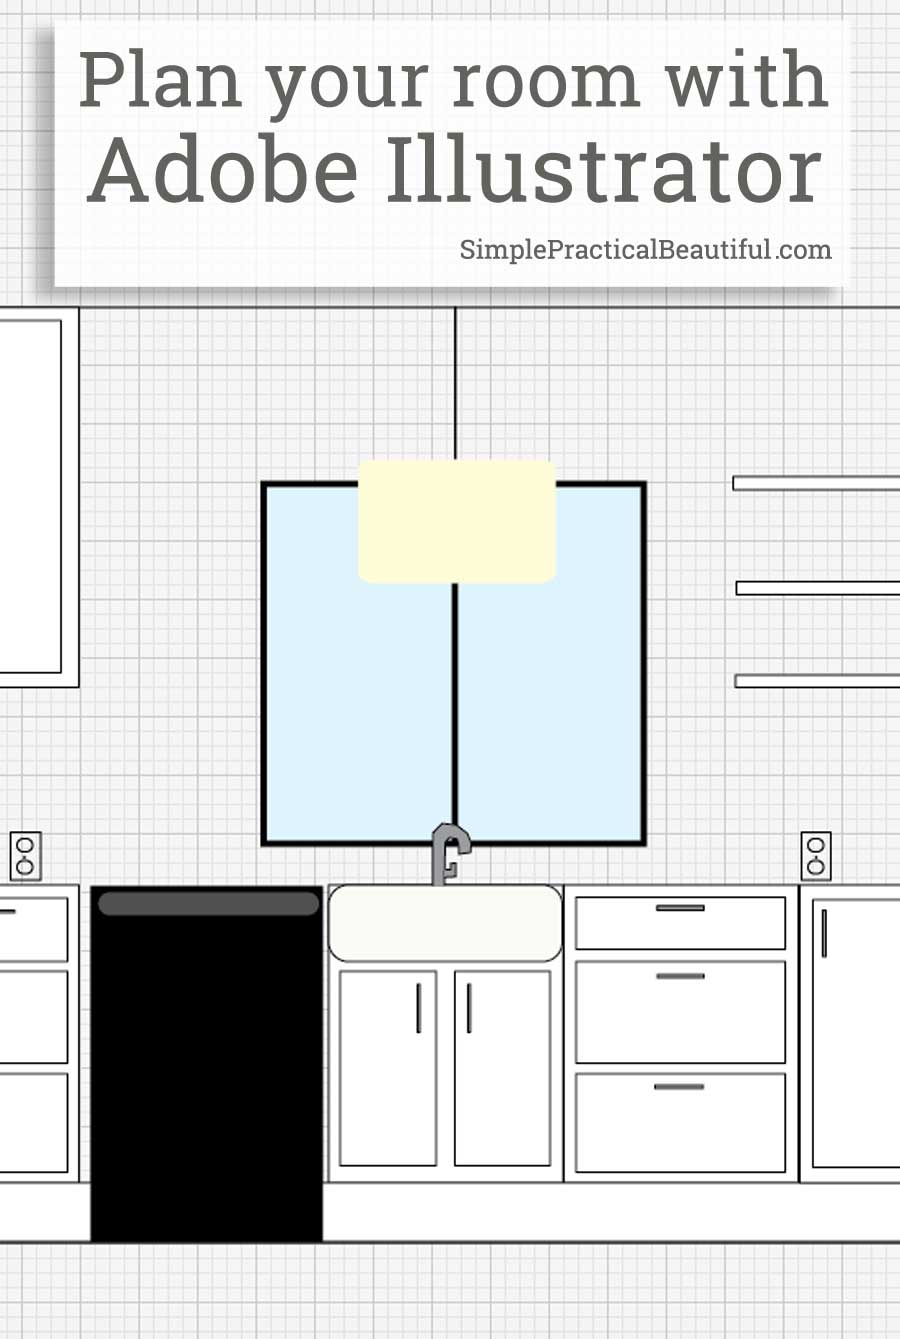 use adobe illustrator to plan a room layout - simple practical